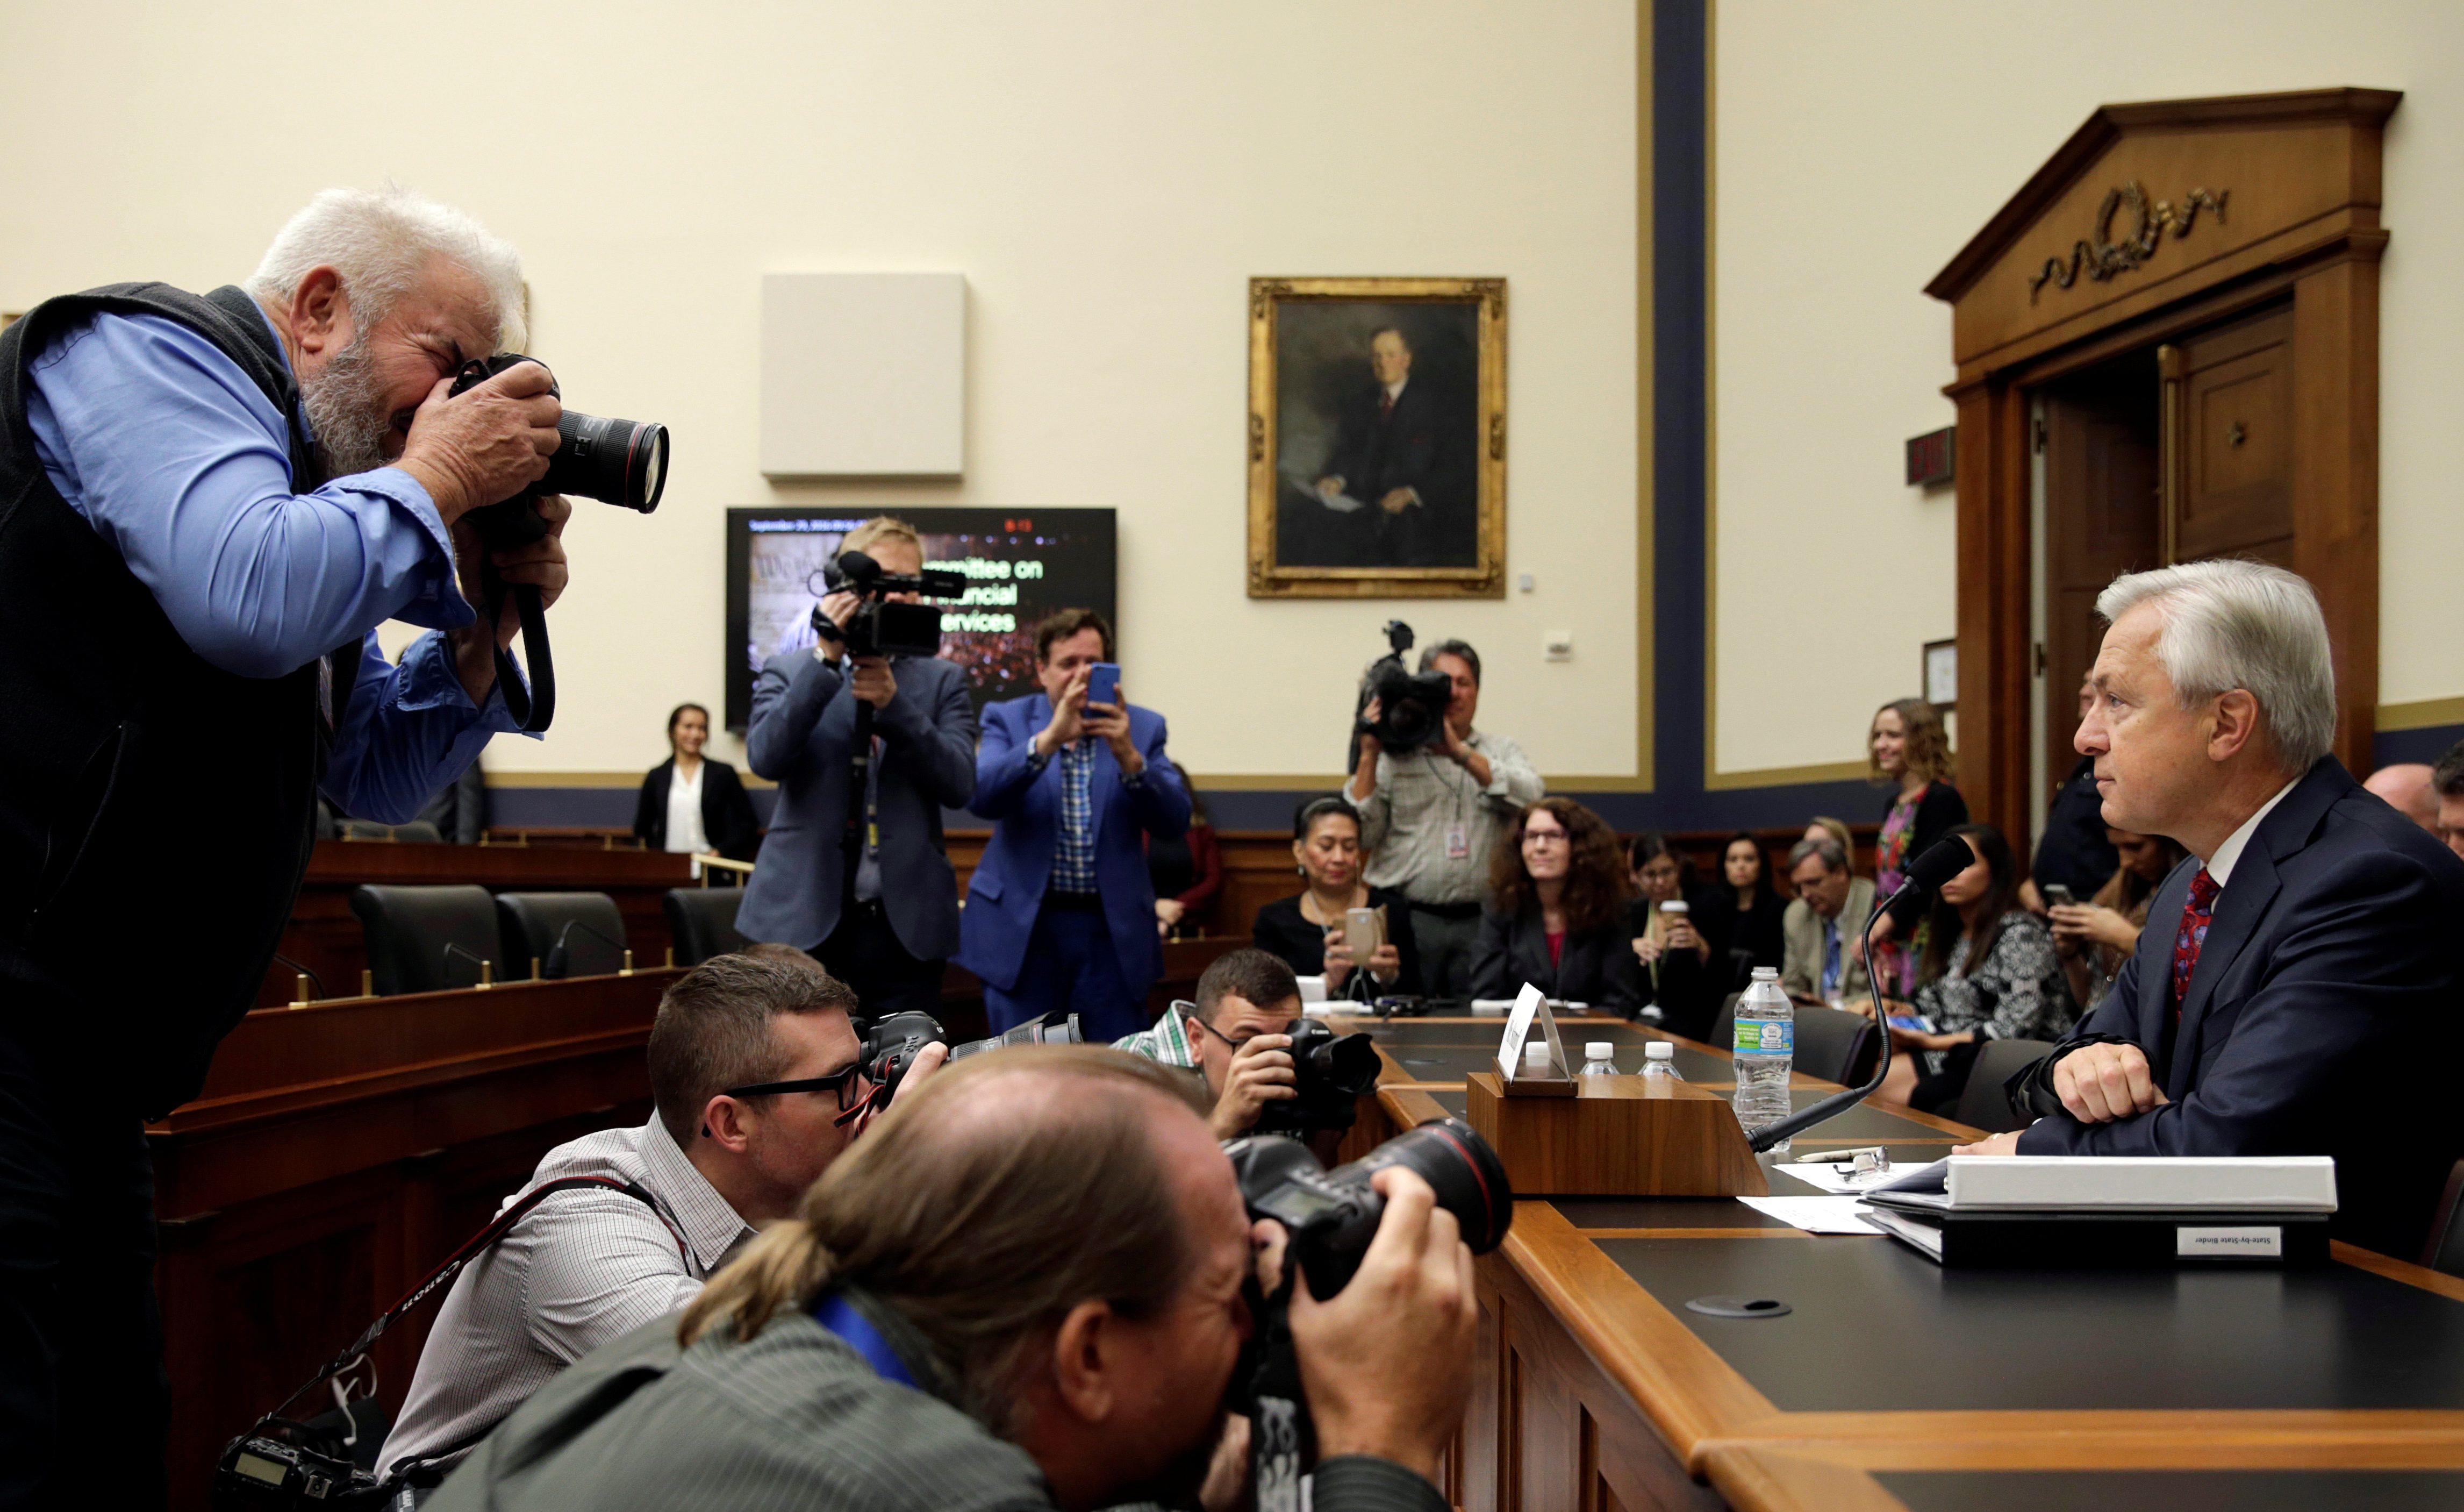 Wells Fargo CEO Stumpf is seen before testifying at the House Financial Services Committee on Capitol Hill in Washington